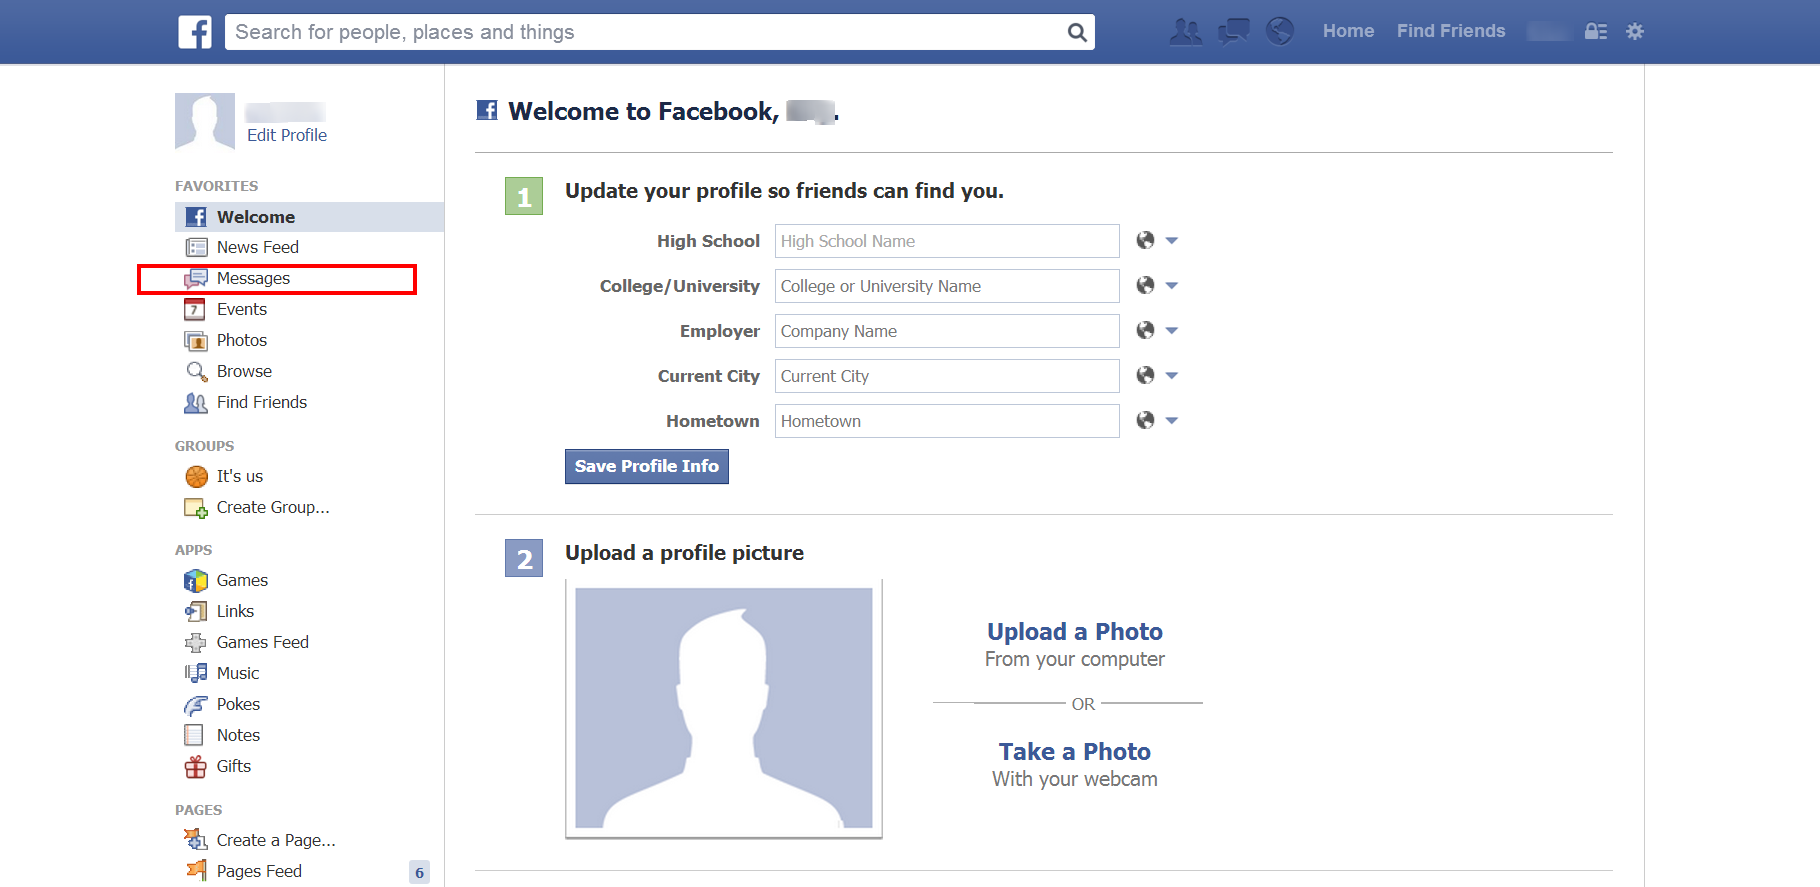 How To Send Messages To Your Friends On Facebook On A Pc